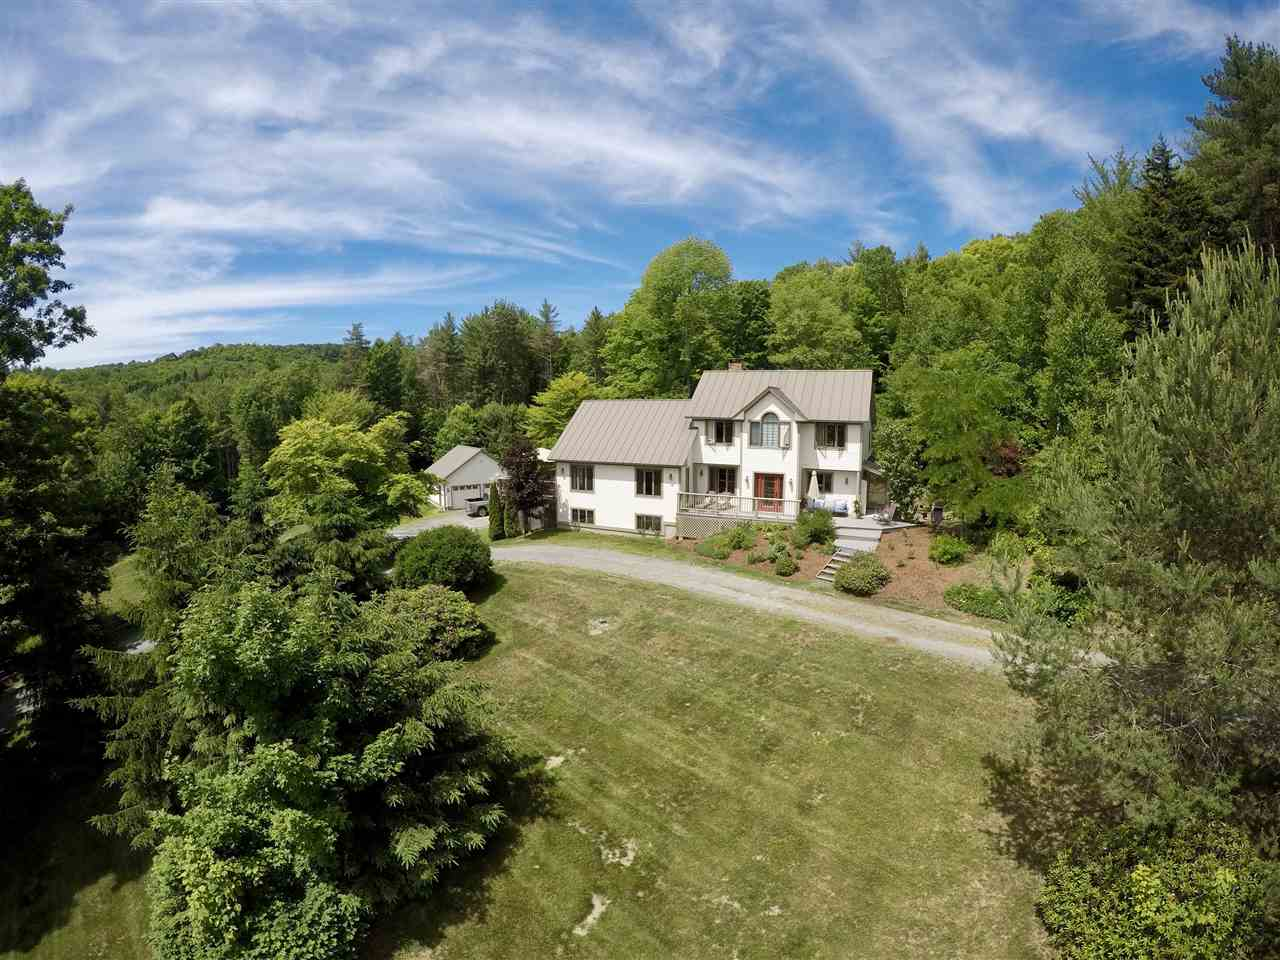 Hartland VT Home or Farm Acres: 10.01     Beds: 3